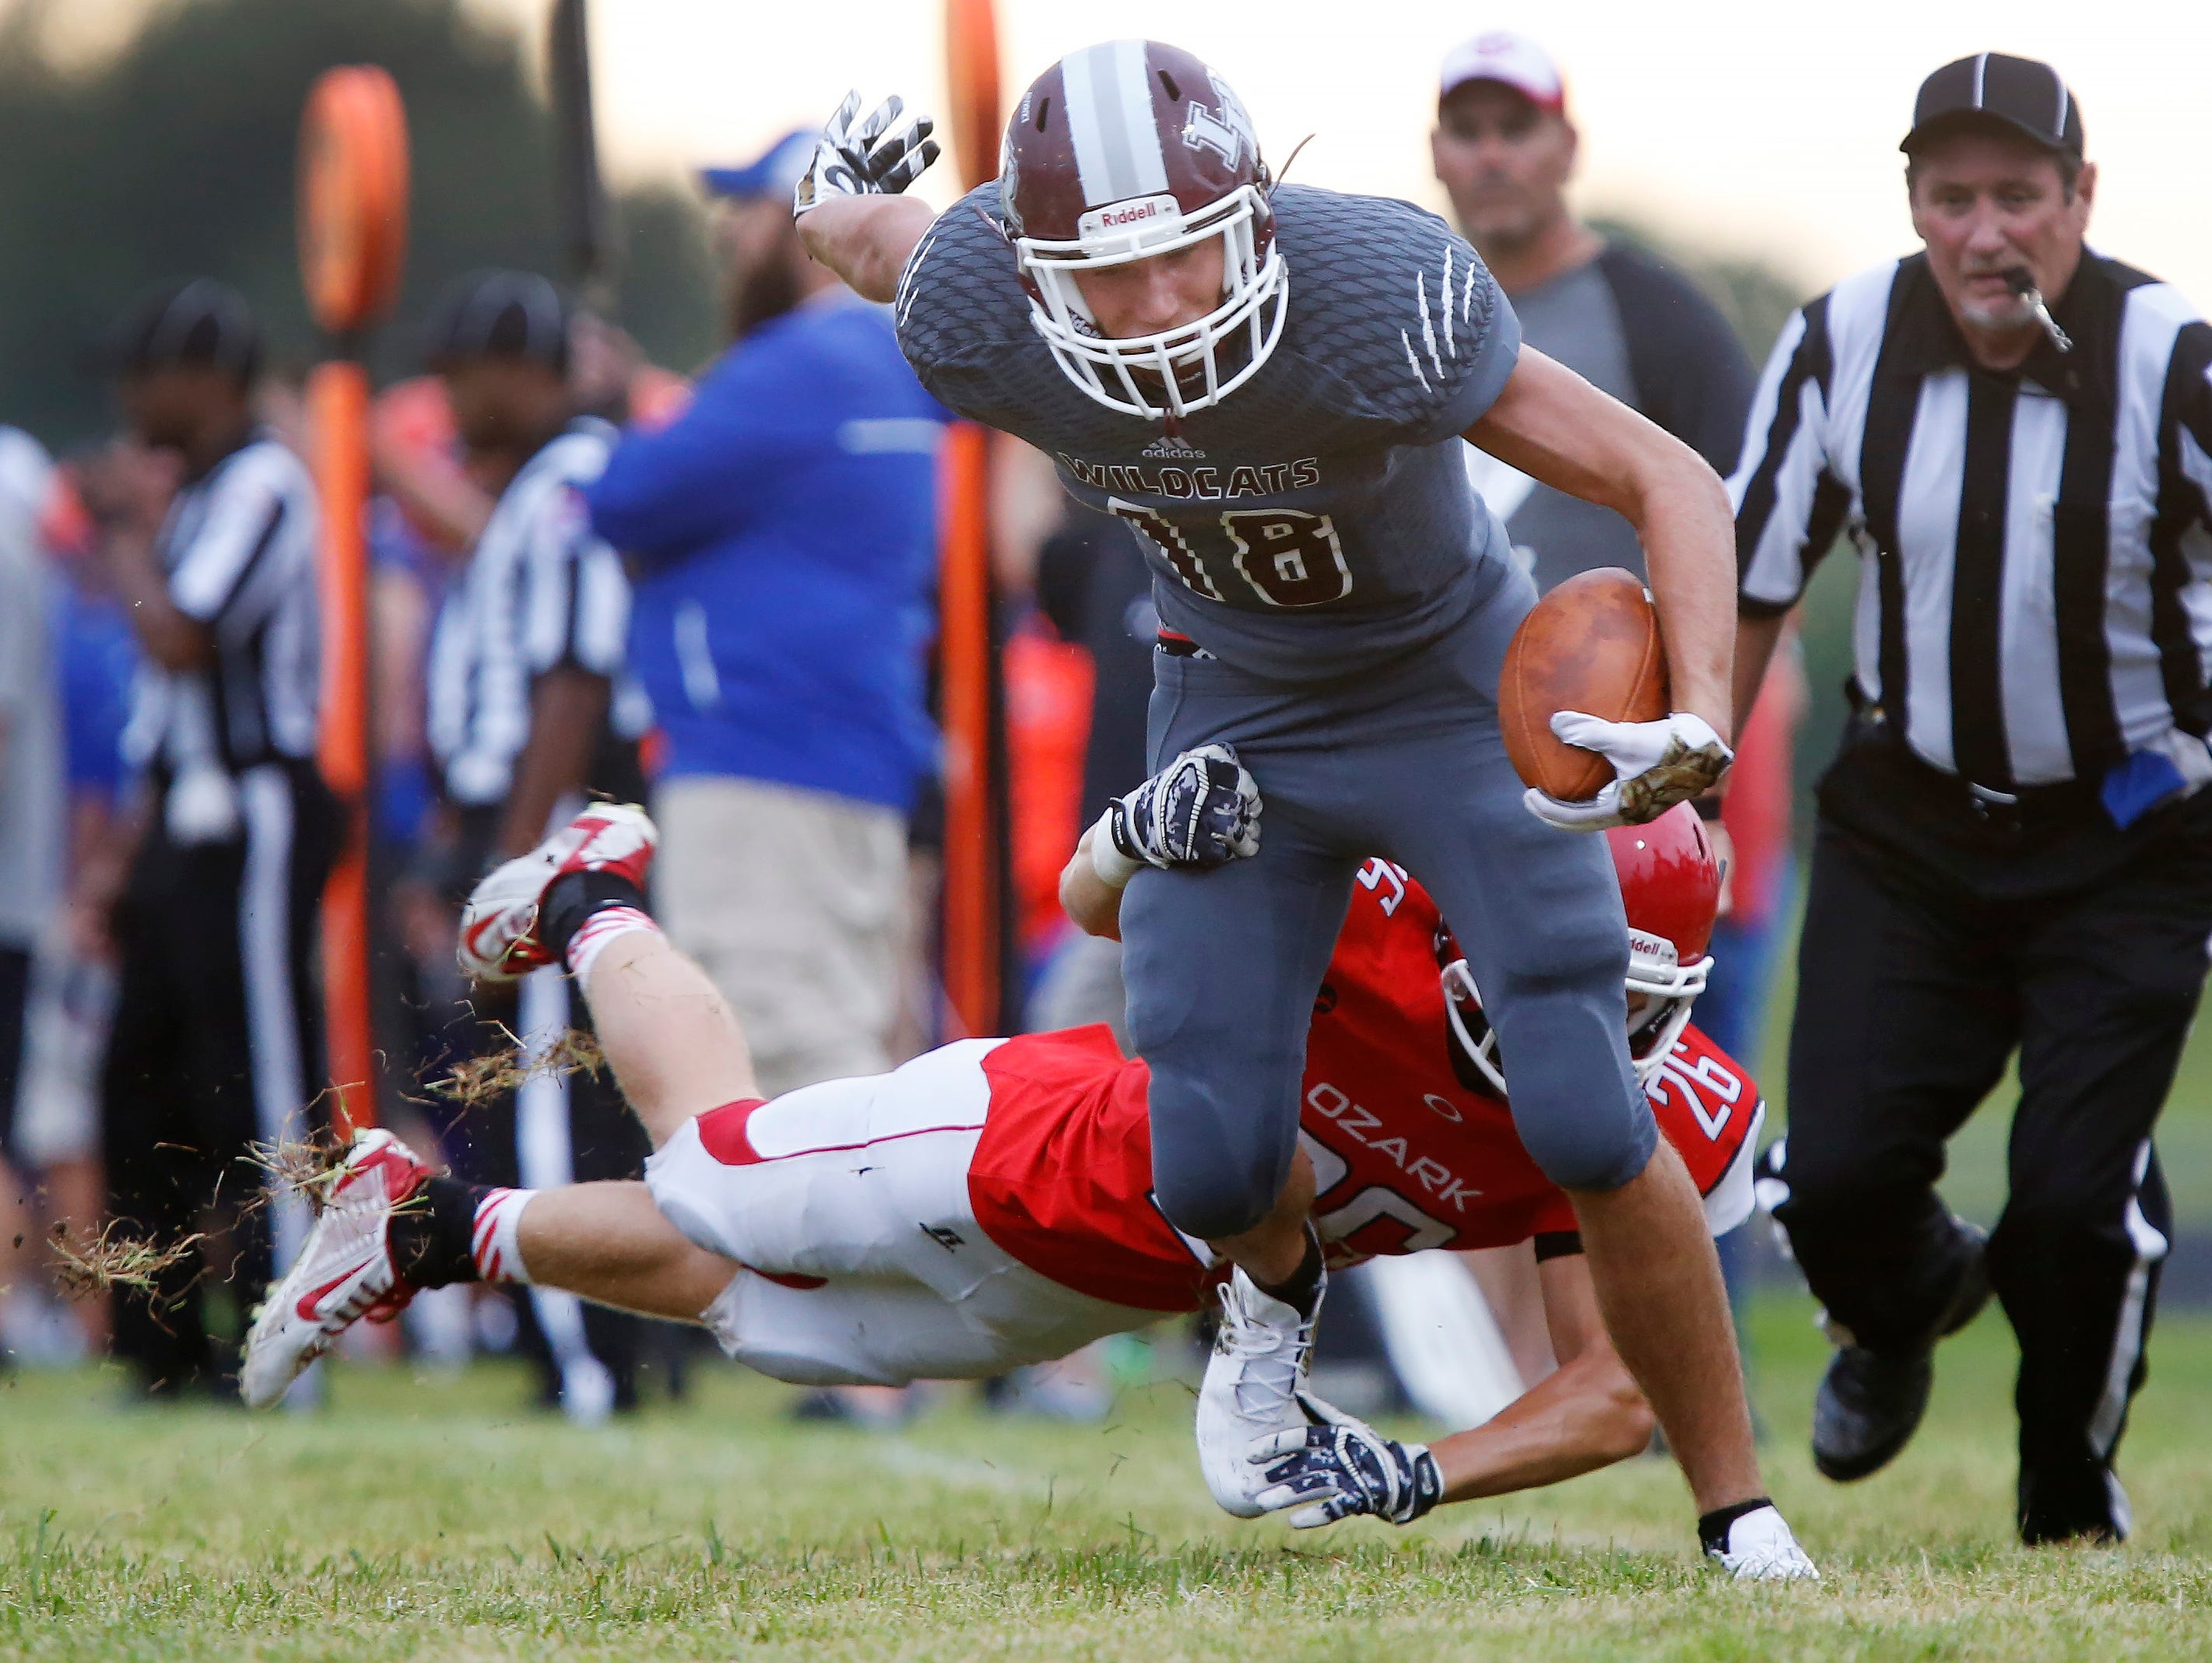 Ryker Strong, of Logan-Rogersville (18), tries to shake free of Ozark's Reed Herrold during the jamboree at Logan-Rogersville High School on Friday, August 12, 2016.